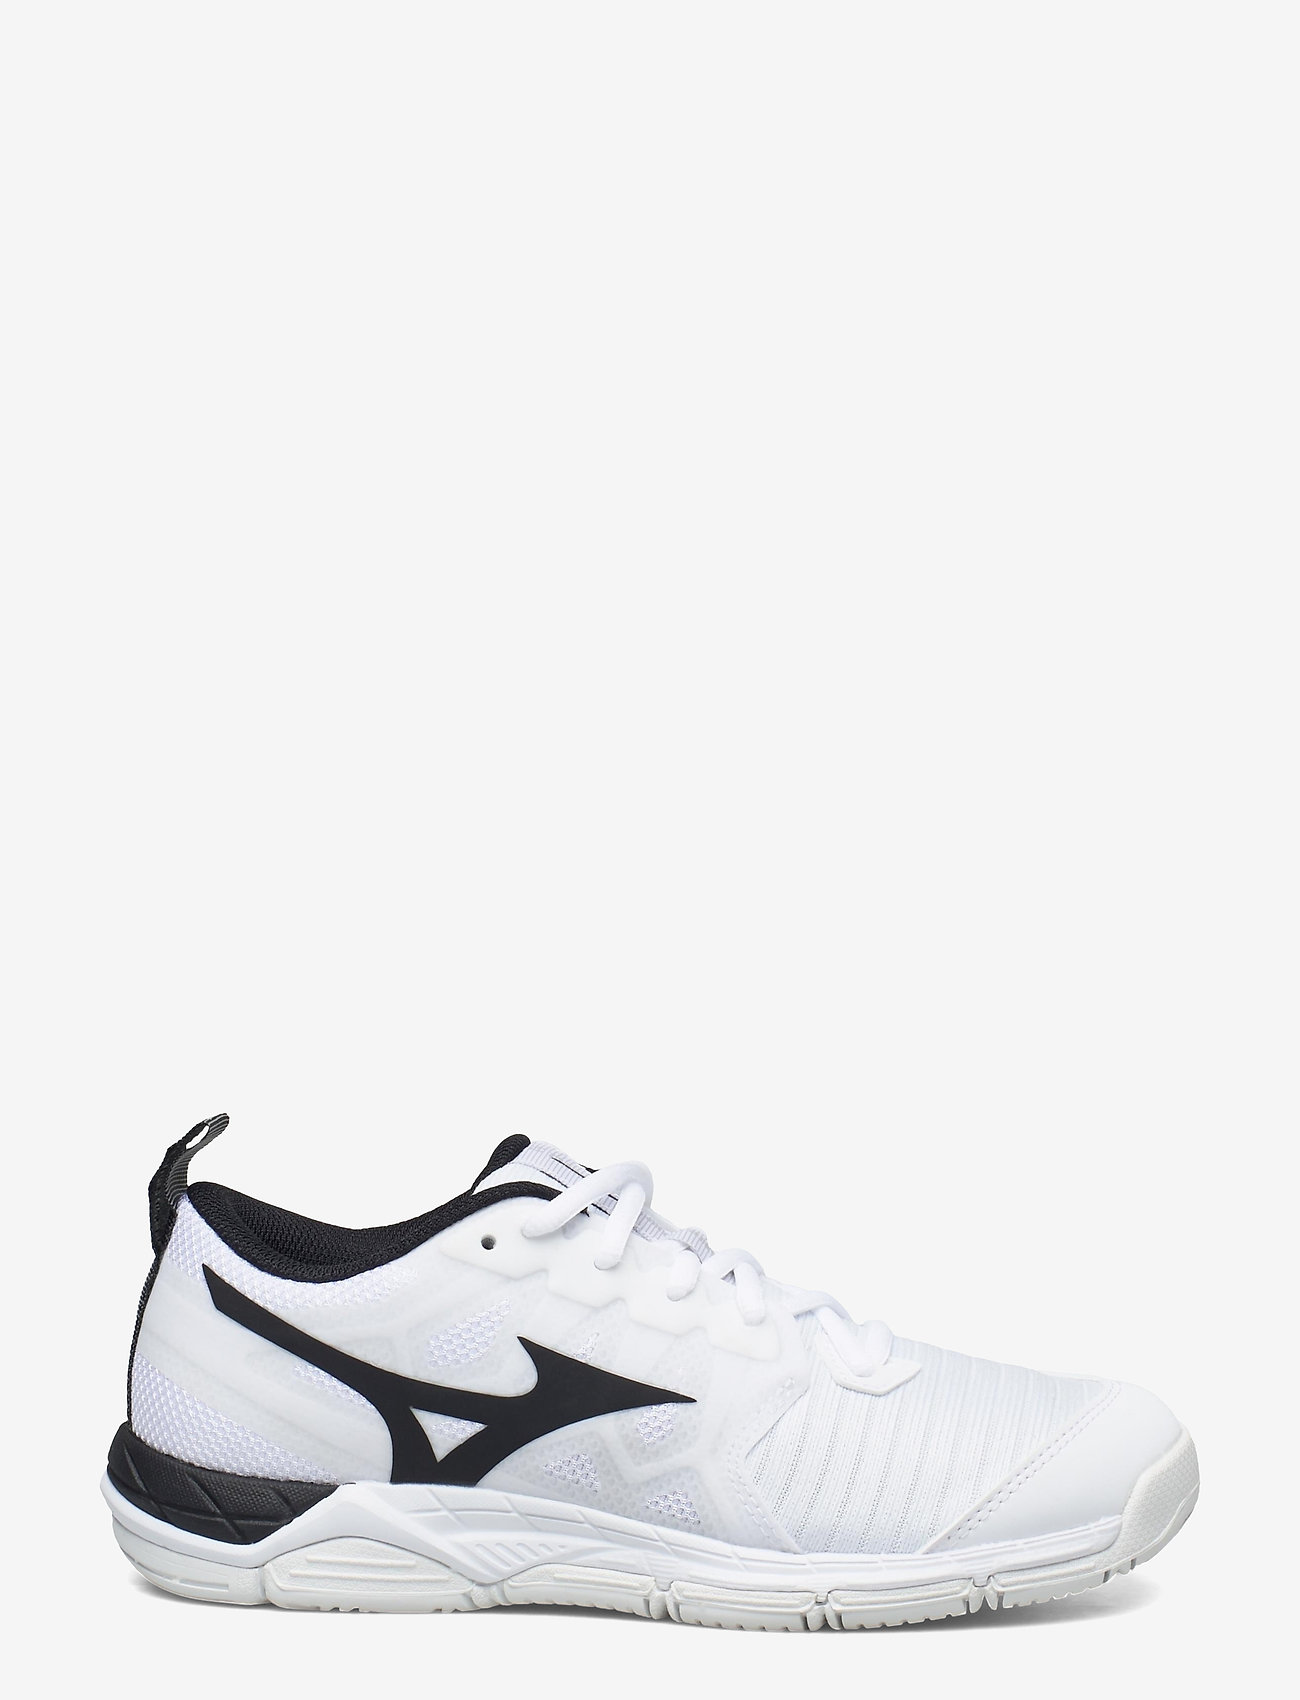 Mizuno - WAVE SUPERSONIC 2(U) - inomhusskor - white / black - 1